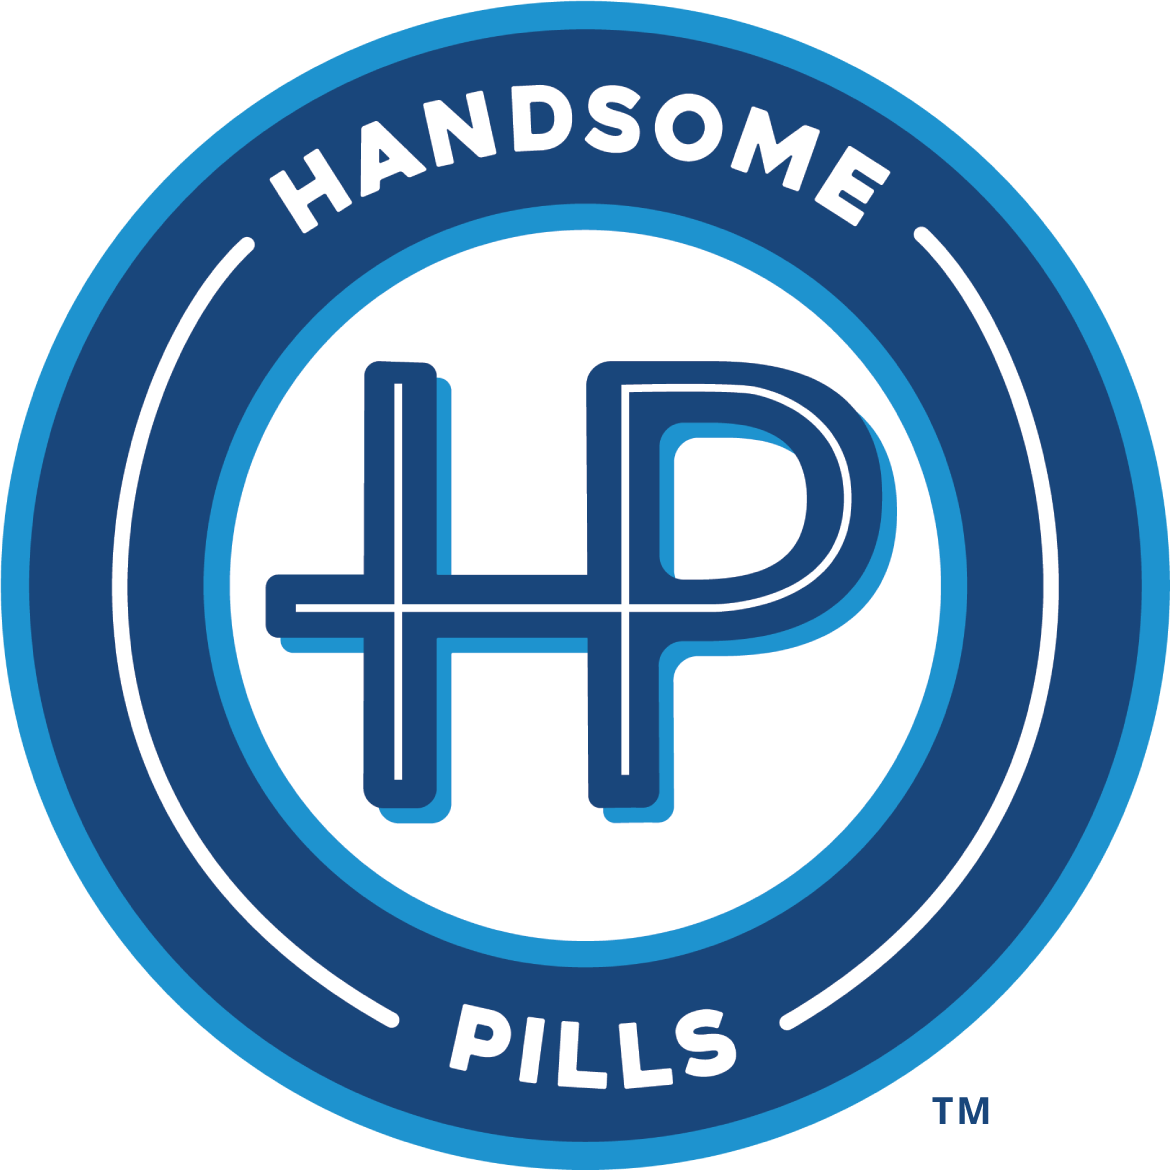 Handsome Pills